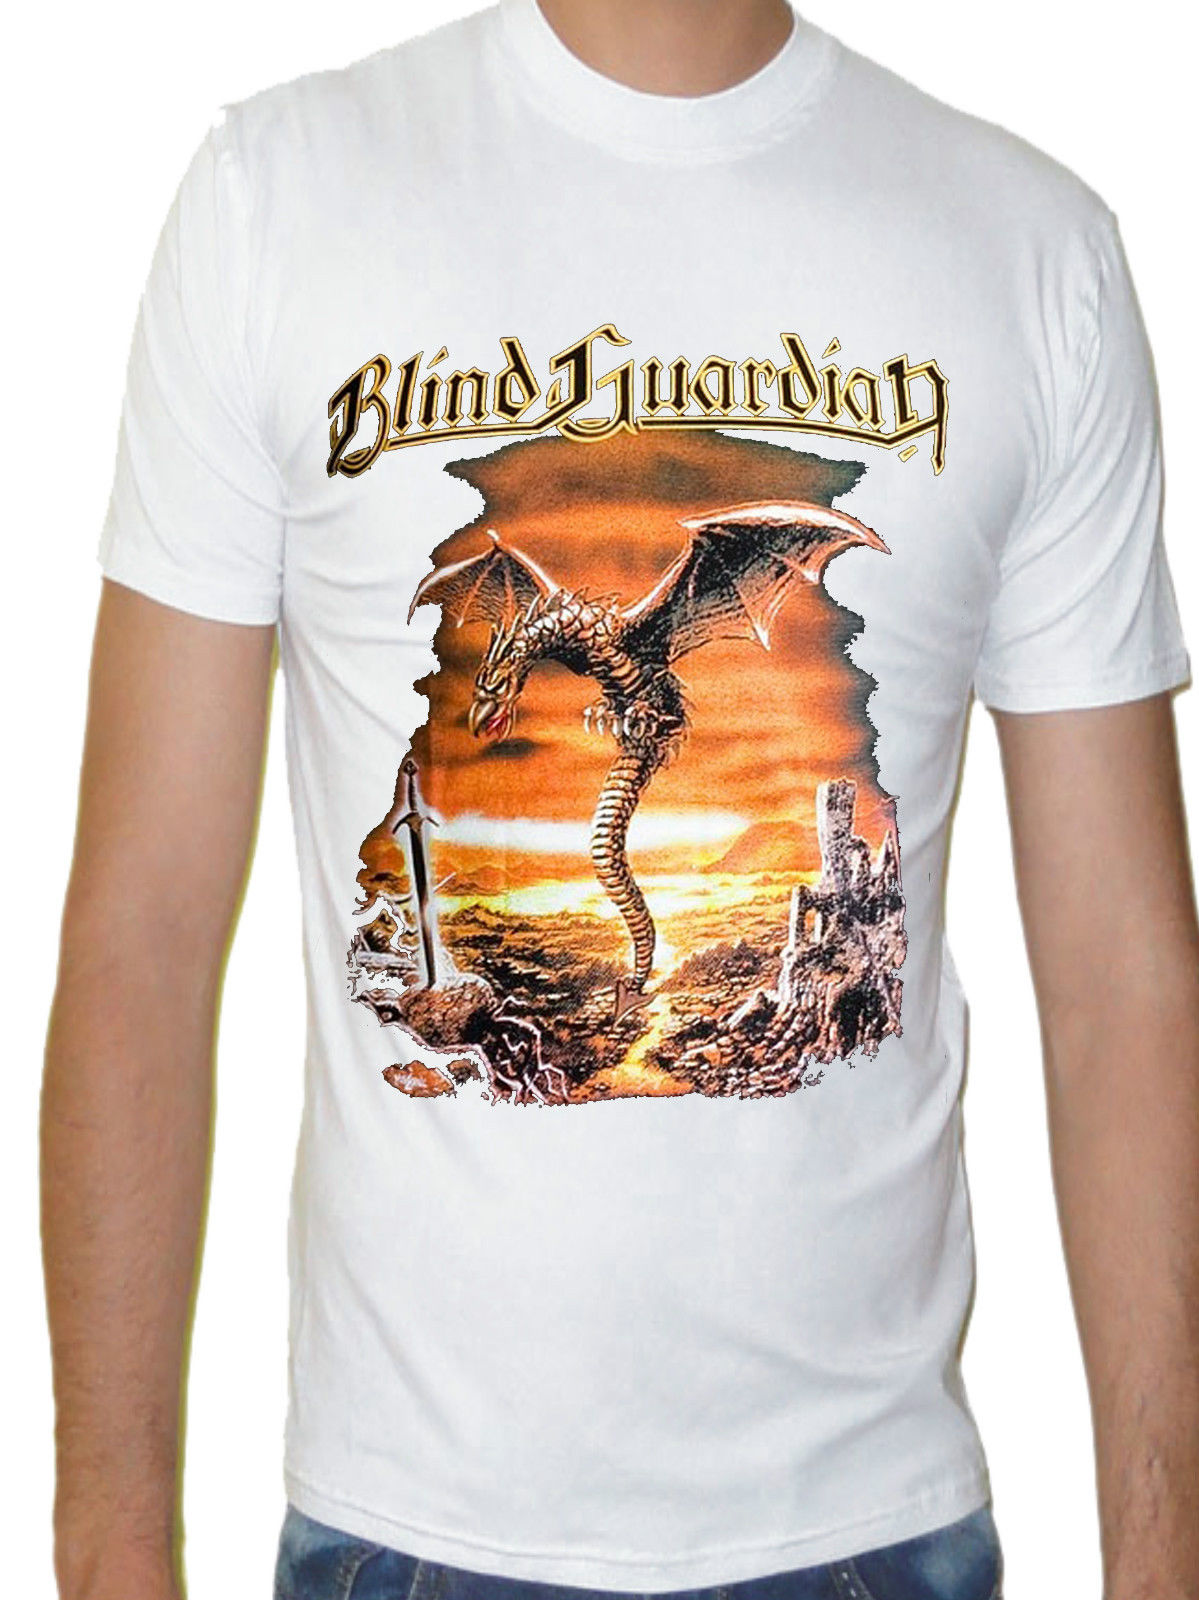 BLIND GUARDIAN BAND WHITE New T-shirt Rock T-shirt Rock Band Shirt Rock Tee T Shirts Casual Brand Clothing Cotton